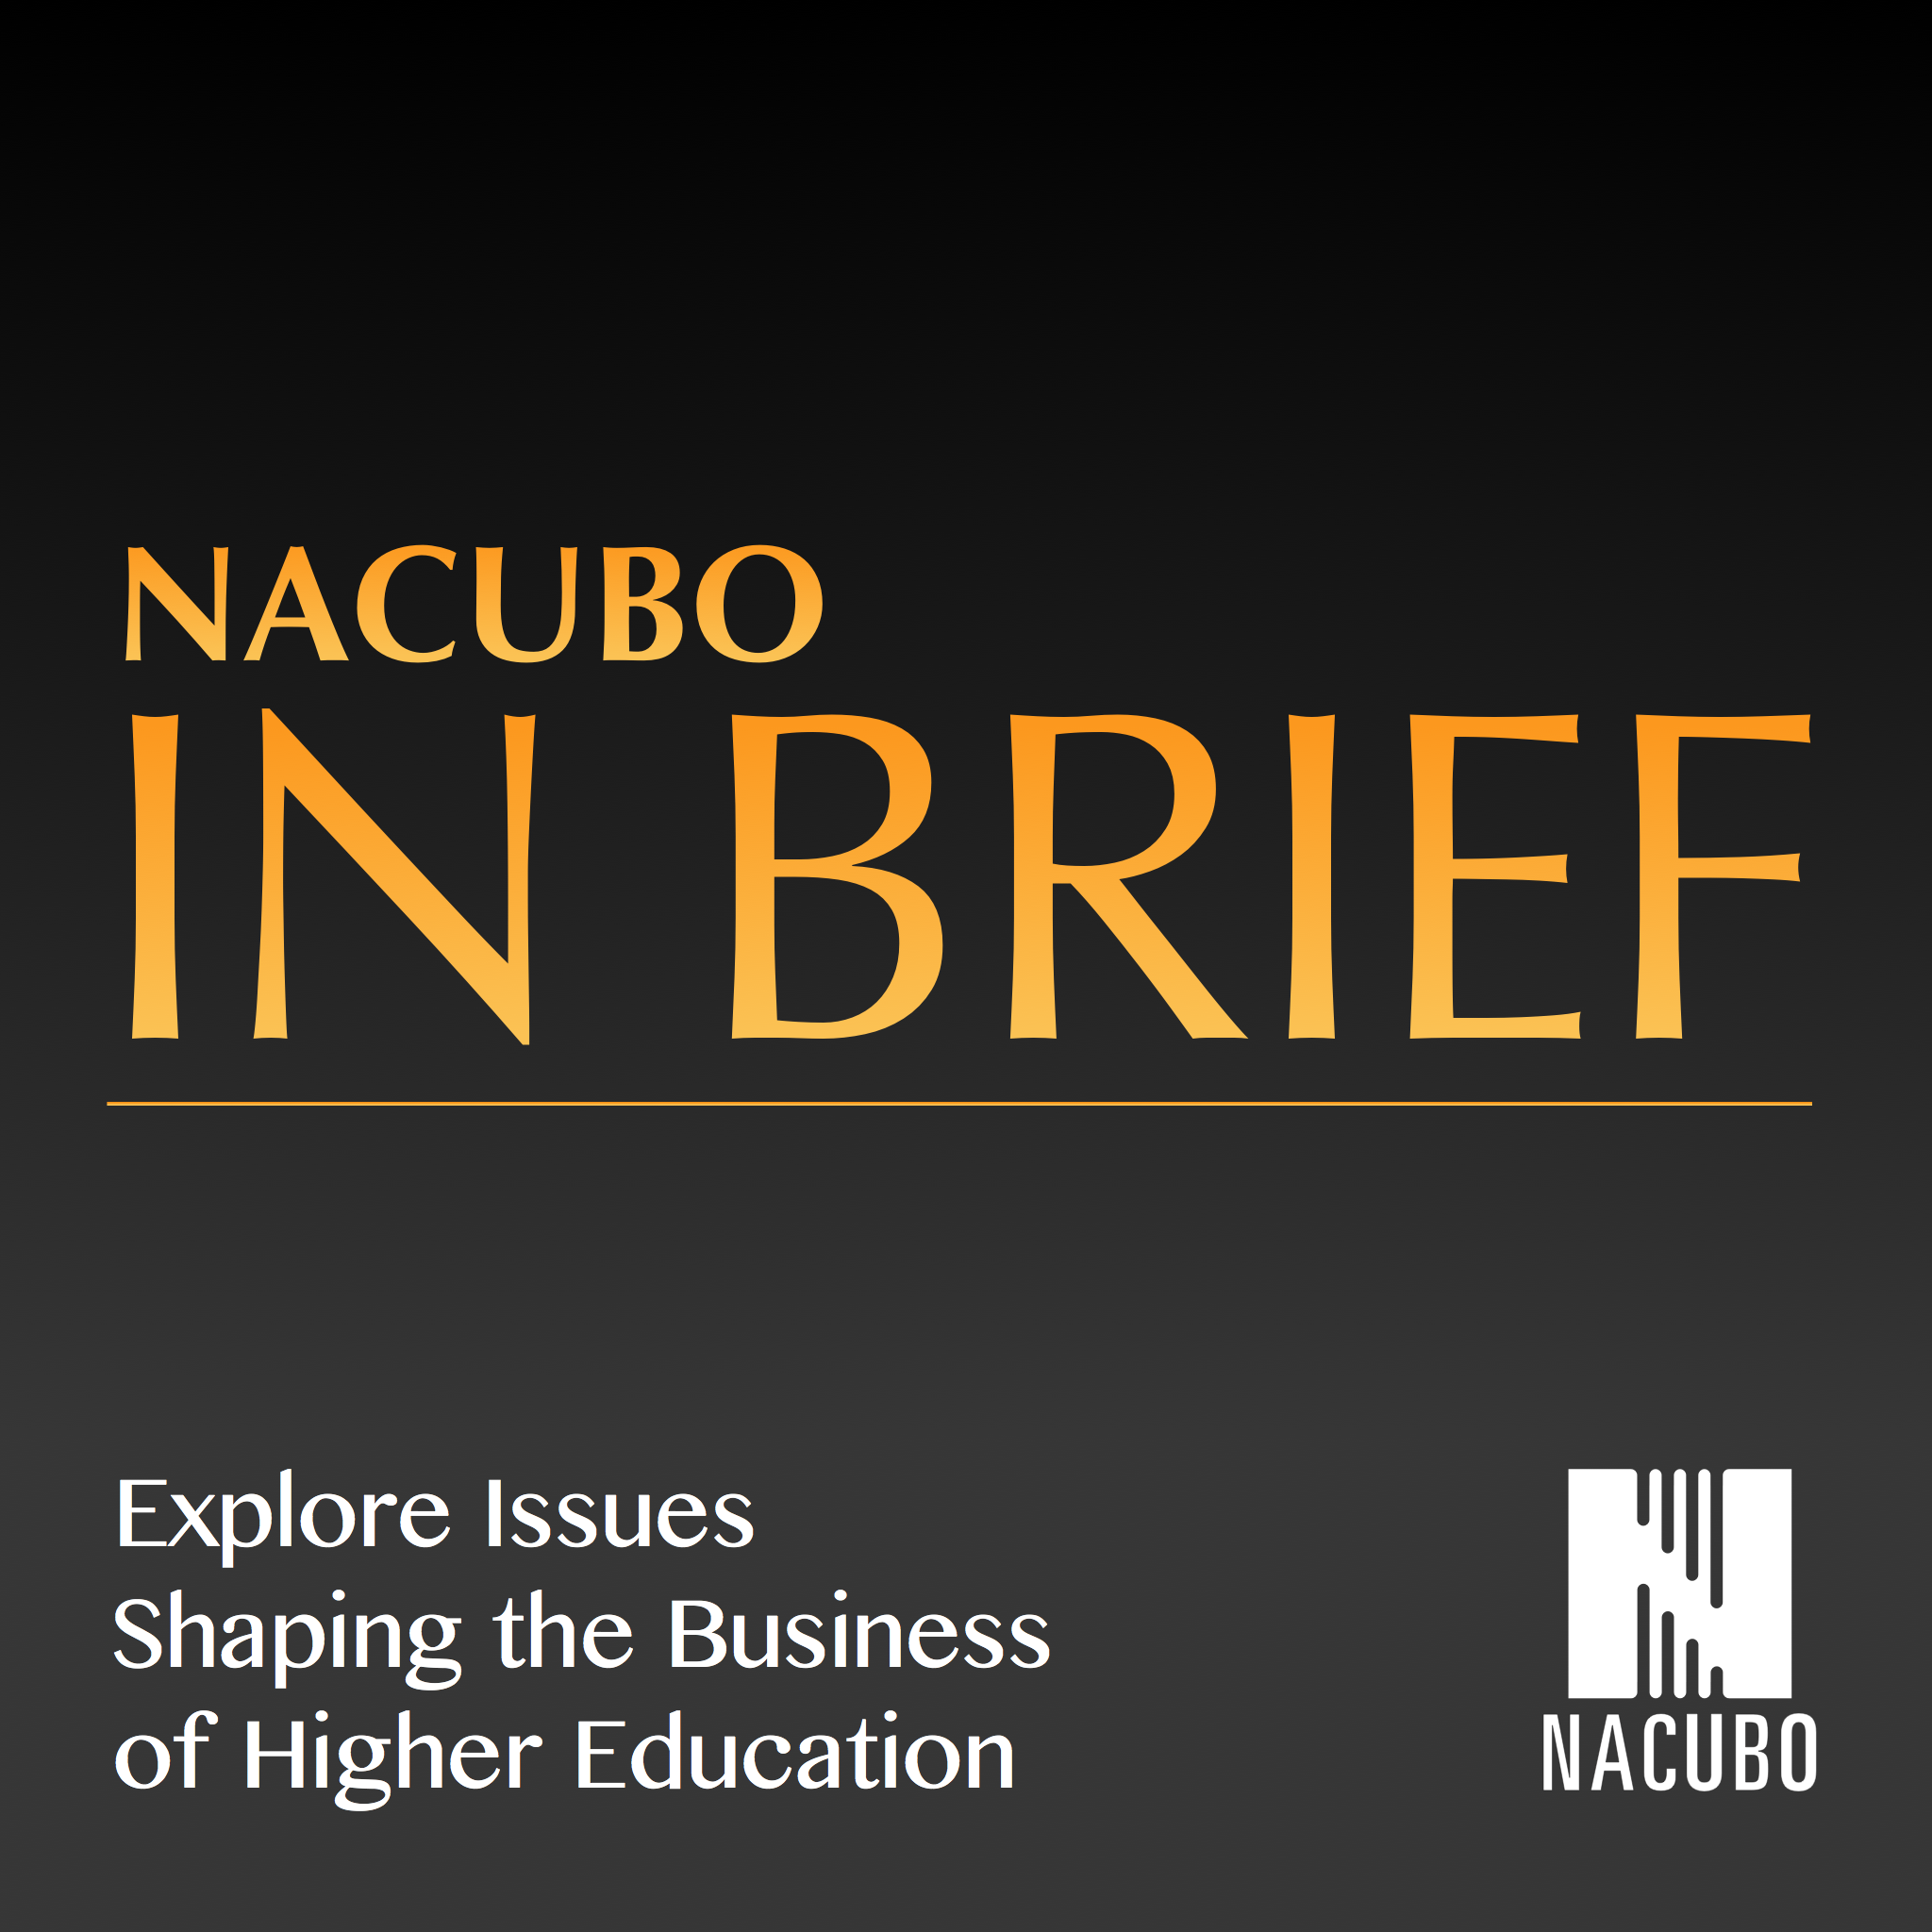 NACUBO in brief logo